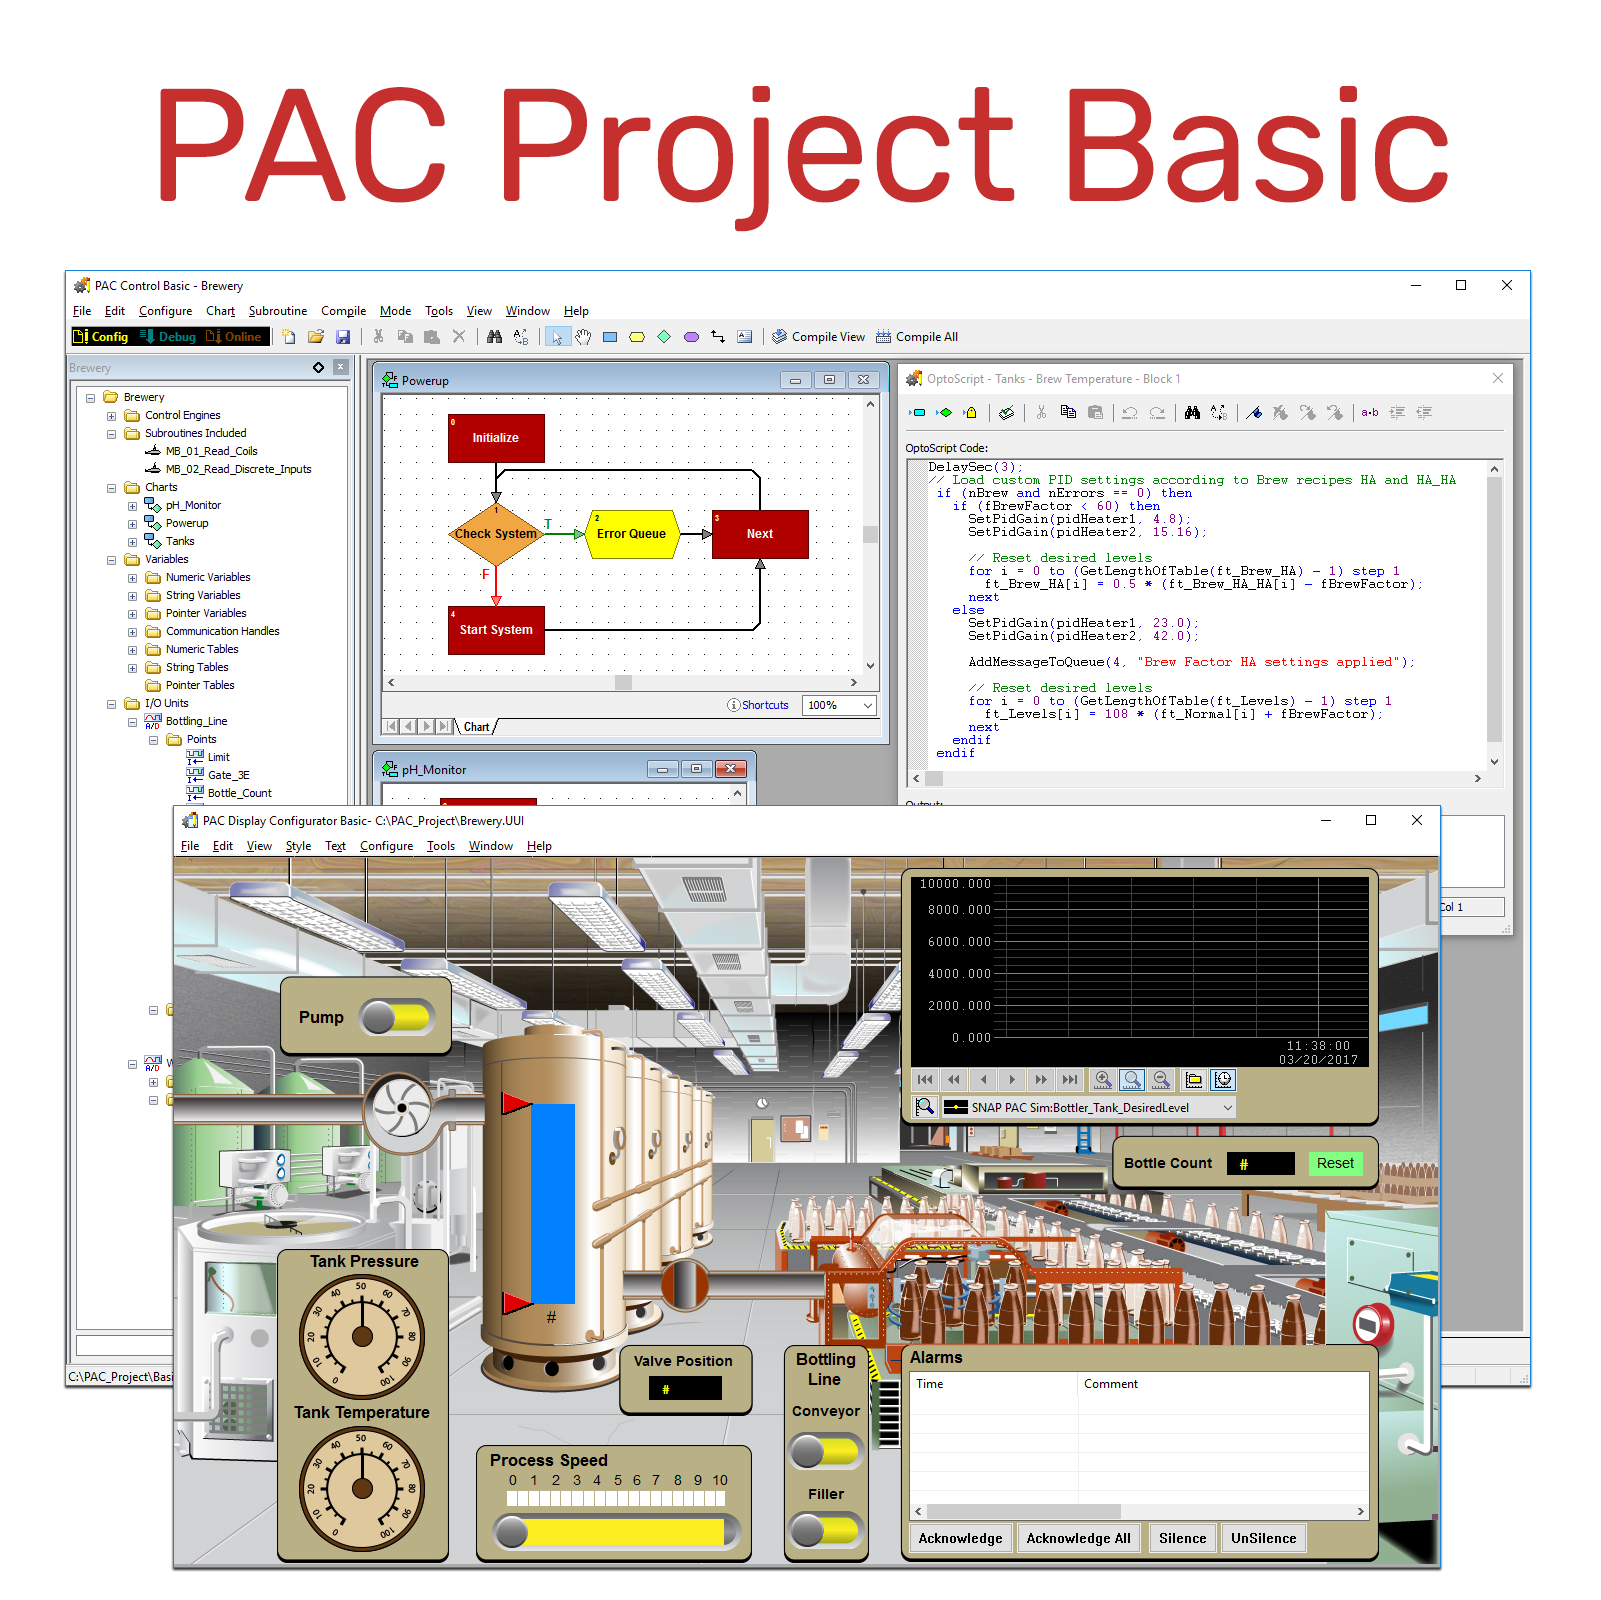 Opto22 Pacprojectbas Pac Project Basic Automation Software Suite Opto 22 Wiring Diagram